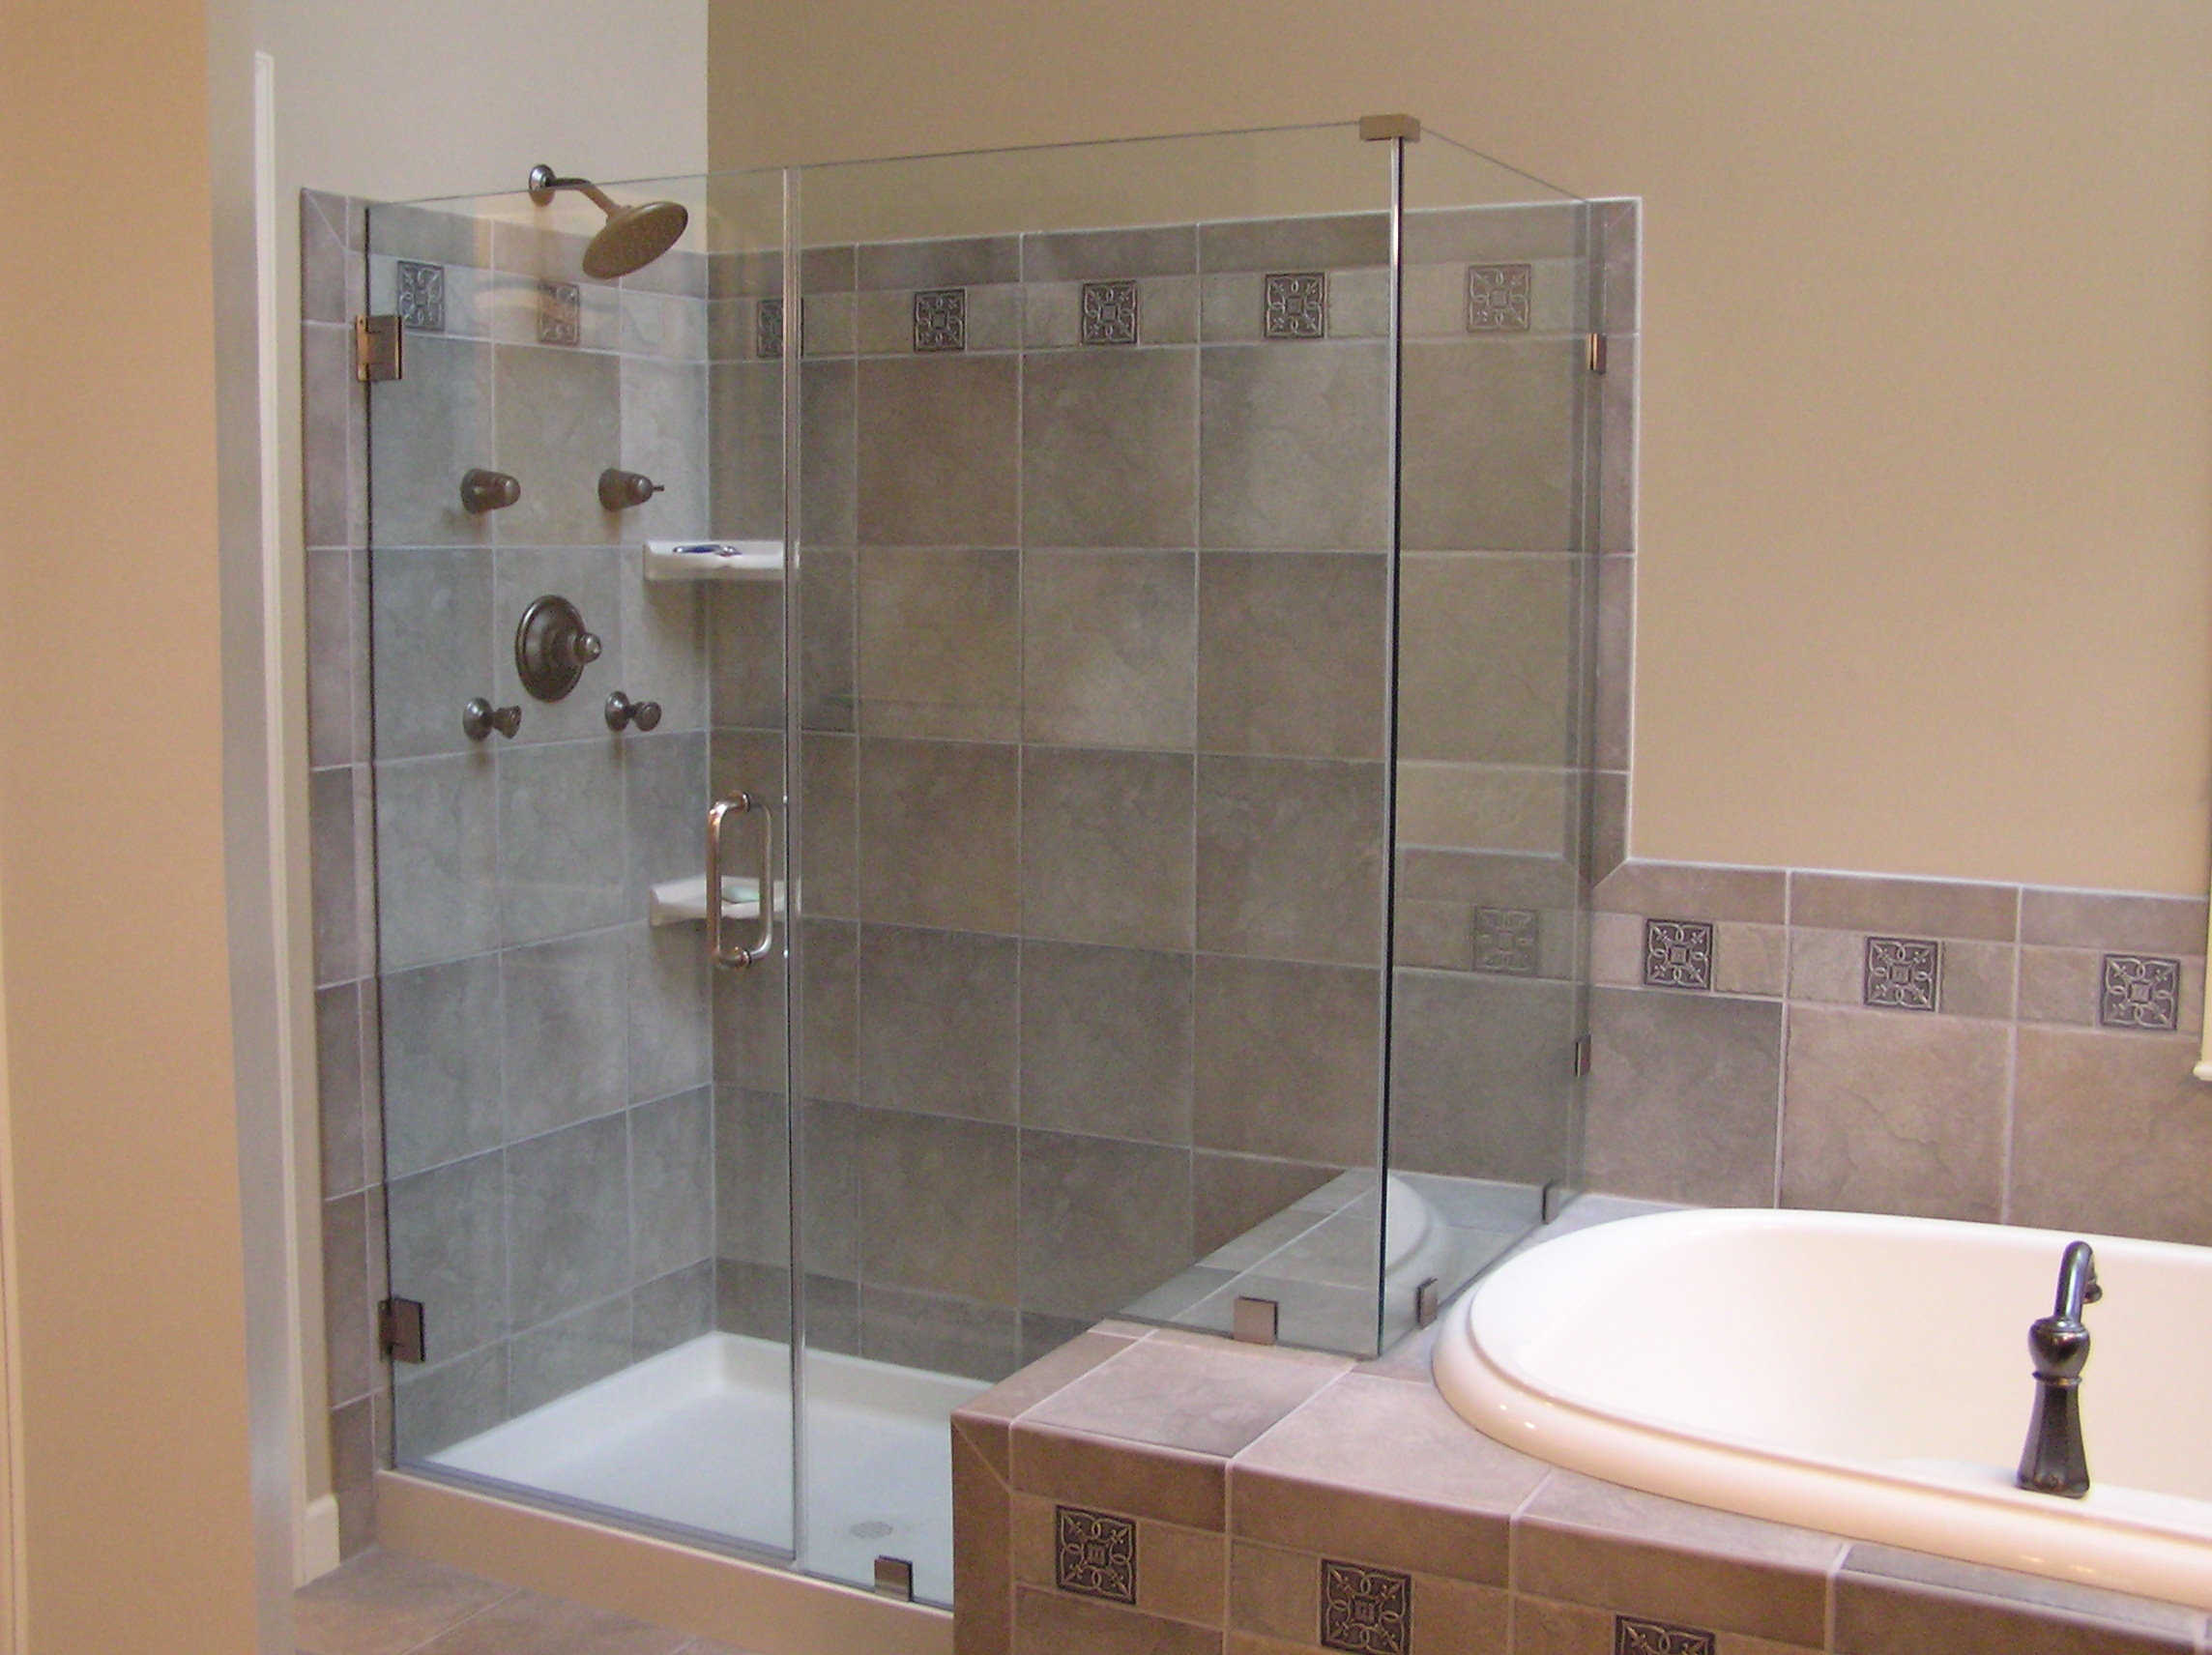 design l bathroom australianwild remodeling remodel dream elegant great home hgtv org